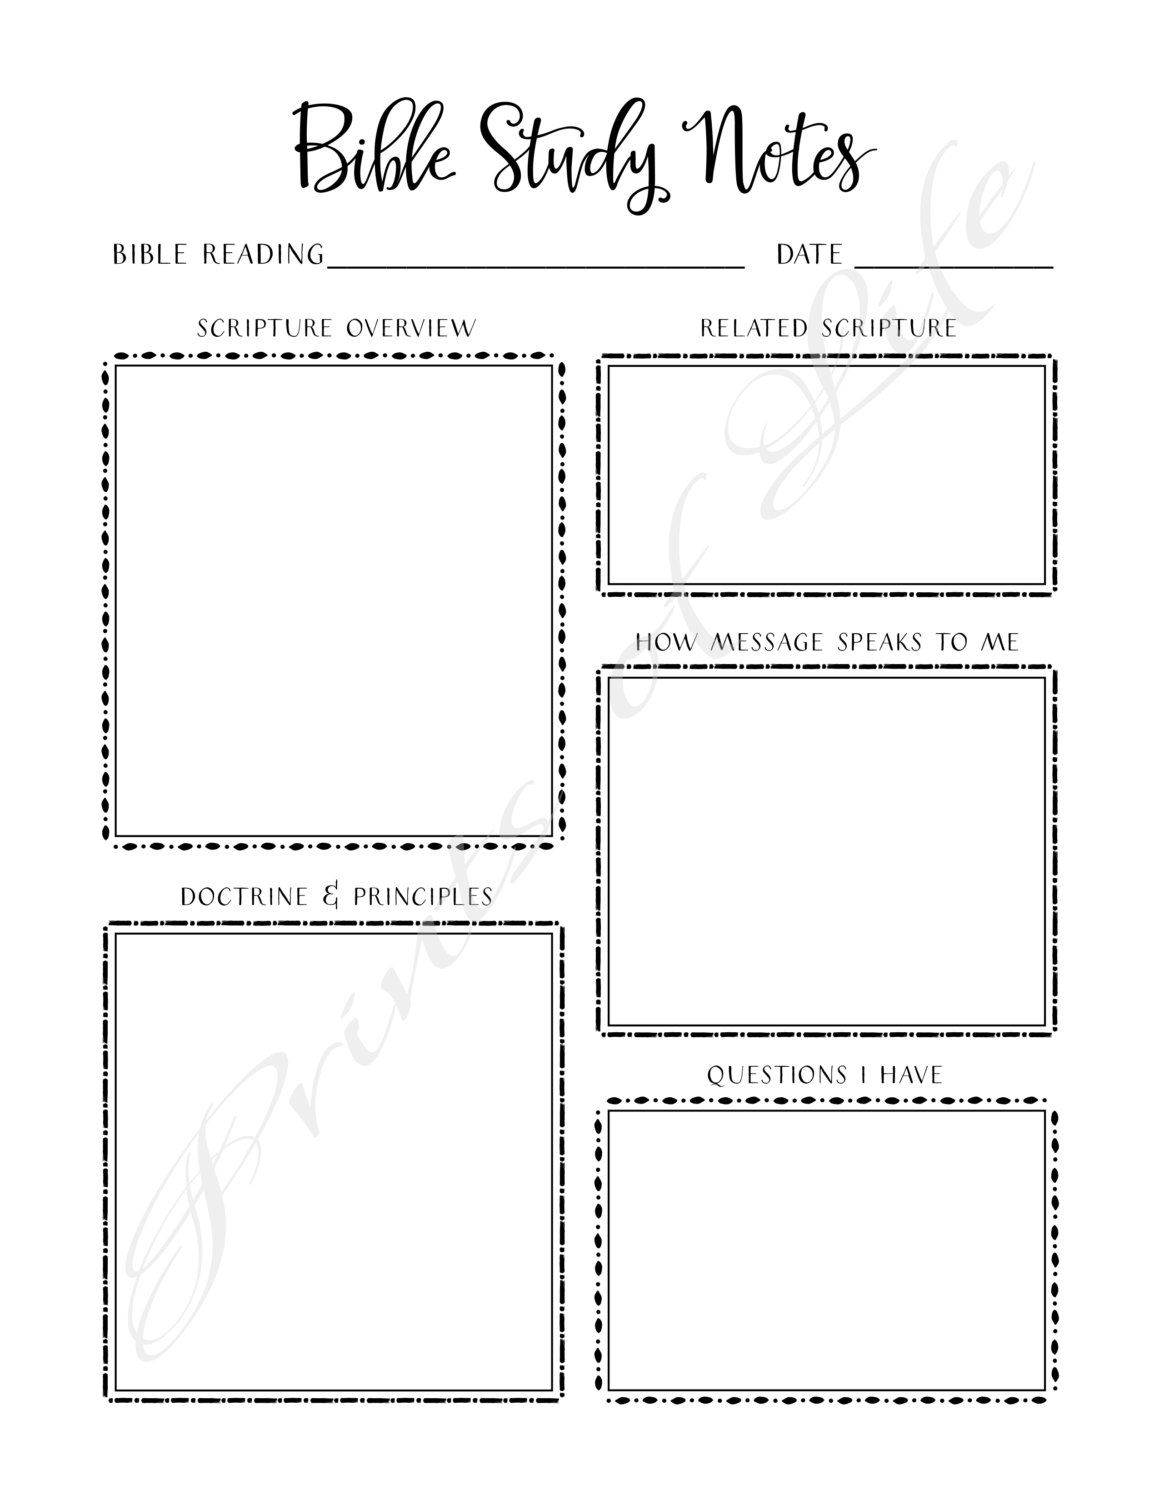 Neolithic Revolution Worksheets Excel Bible Study Notes Pdf Printable Instant Download Church Journal  English For Beginners Worksheets Pdf with Native Americans Worksheets Word Bible Study Notes Pdf Printable Instant Download Church Journal  Scripture Planner Worksheet Lesson Notebook Bible Verse Reading Subtracting Positive And Negative Numbers Worksheet Excel